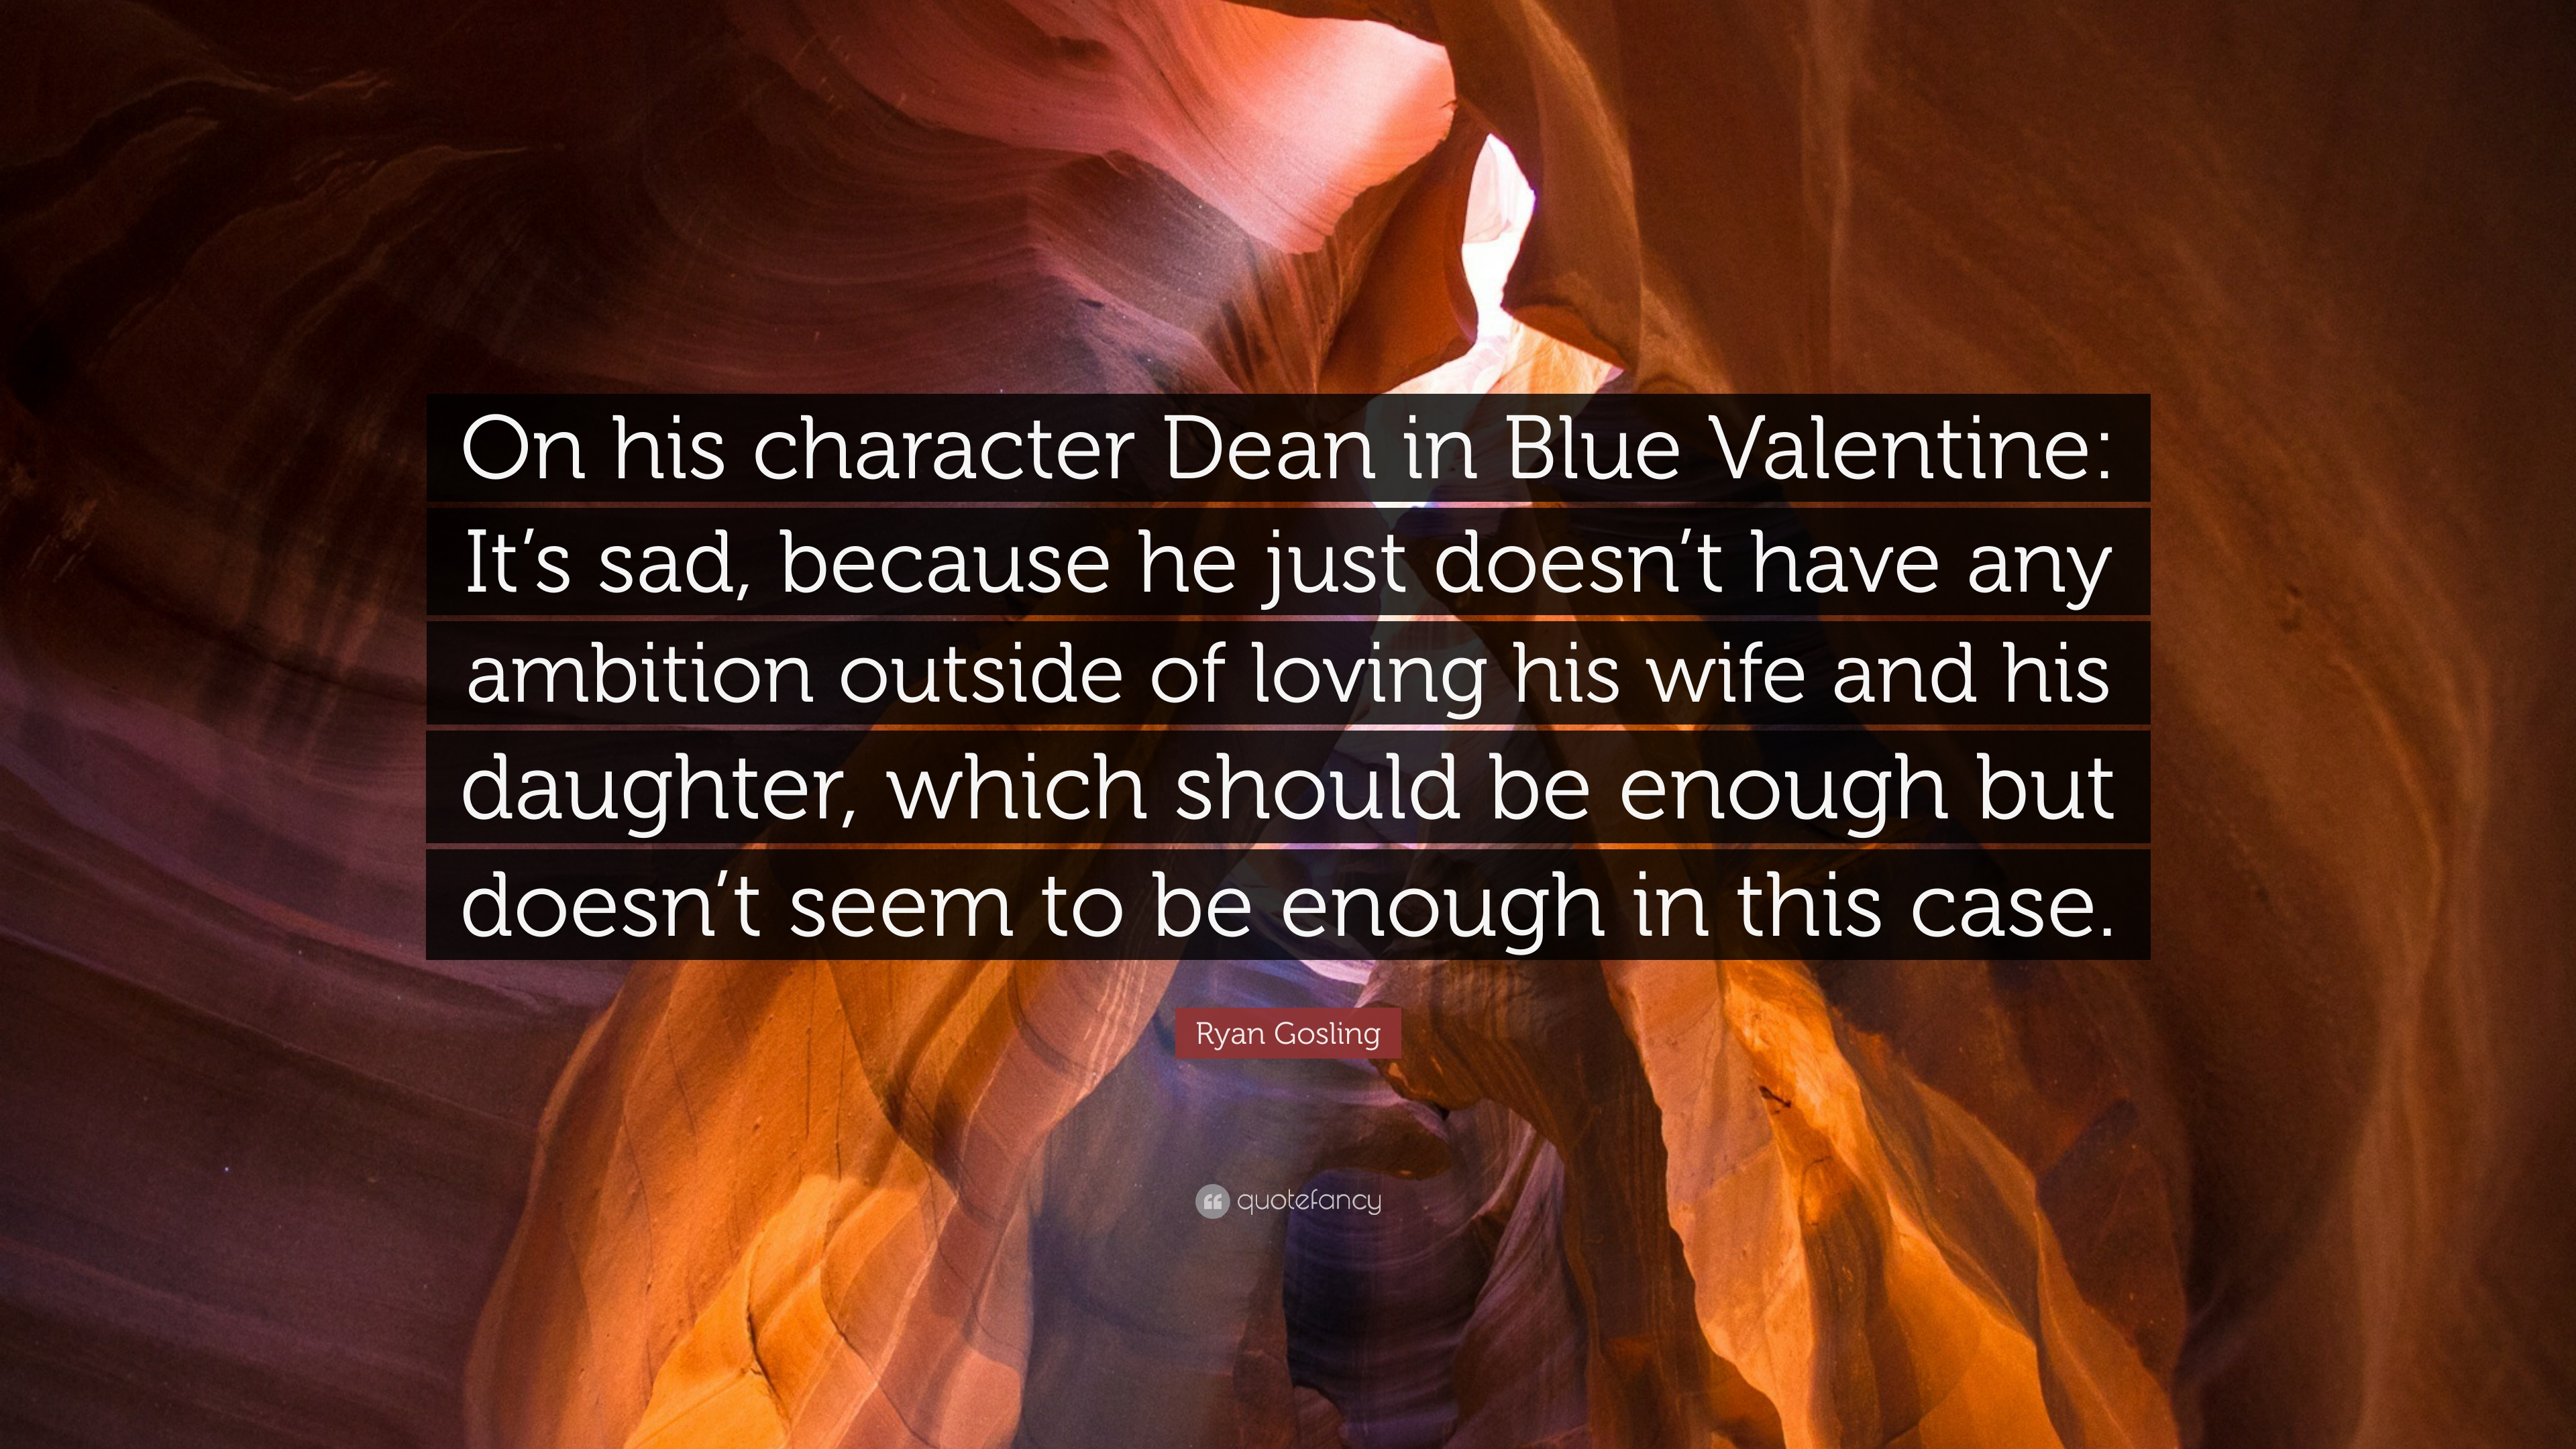 Ryan Gosling Quote On His Character Dean In Blue Valentine